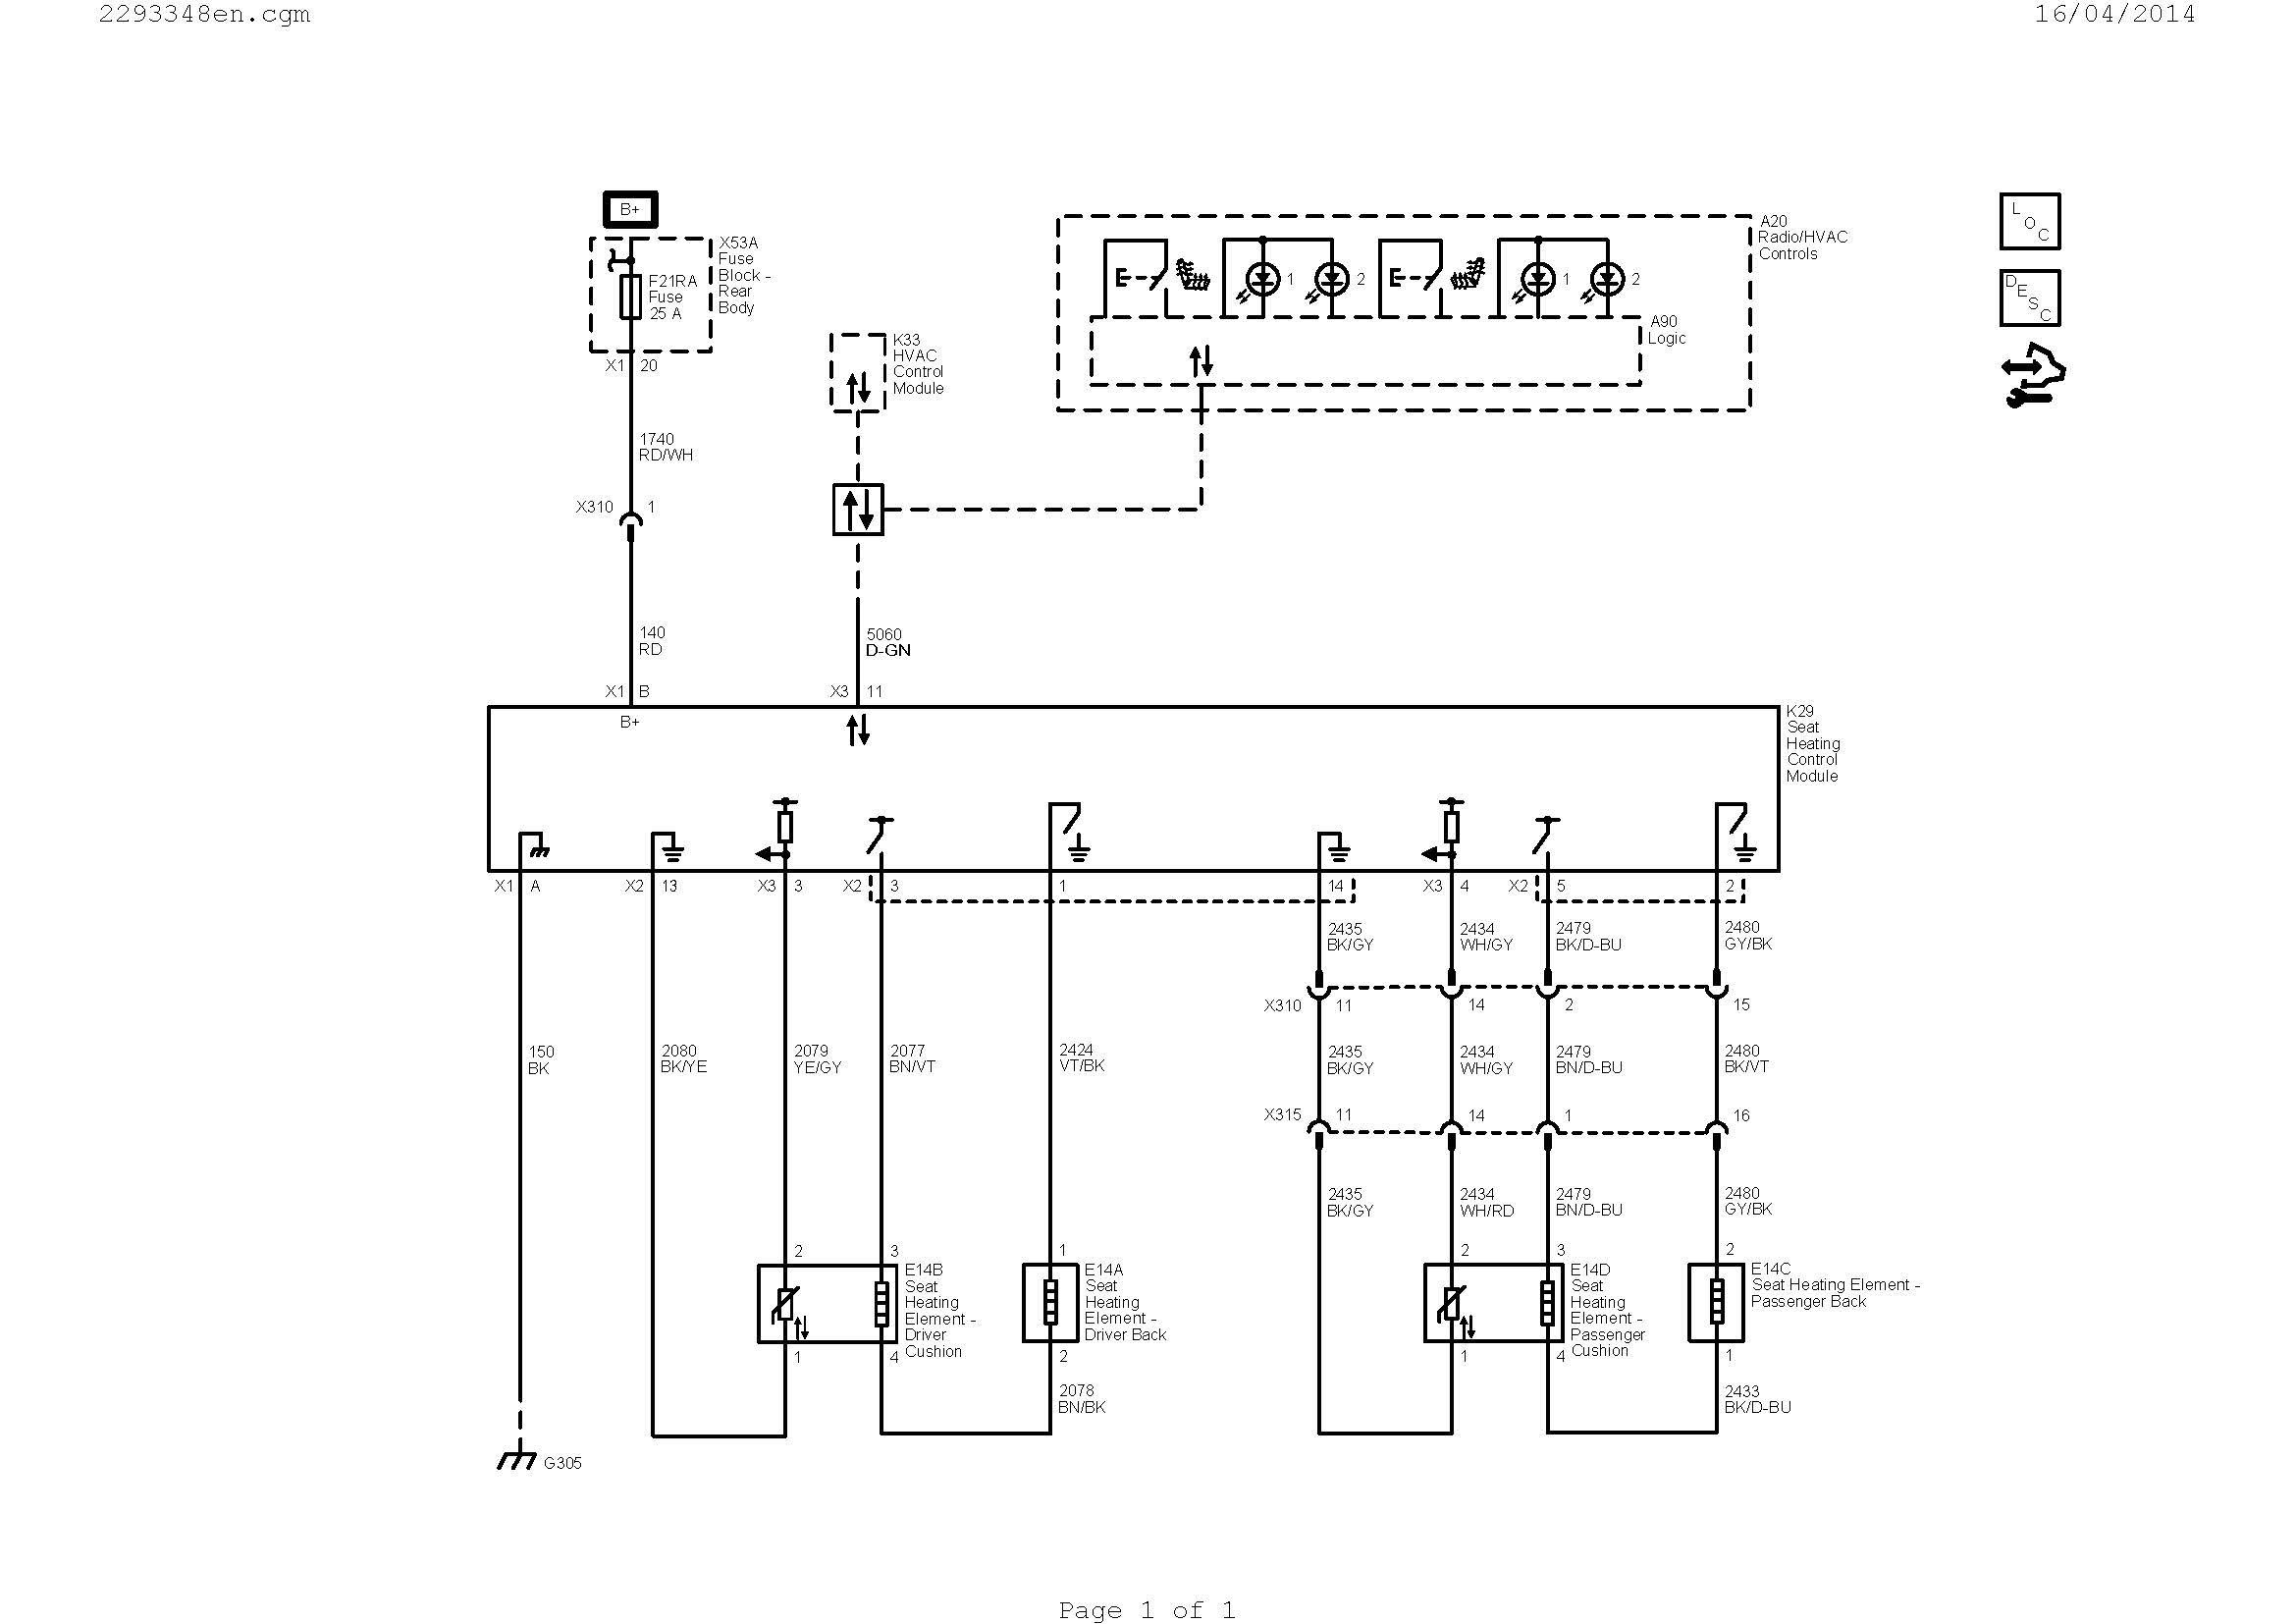 split unit wiring diagram Download-Wiring Diagram Car Valid Wiring Diagram Ac Valid Hvac Diagram Best Hvac Diagram 0d – Wire 5-i